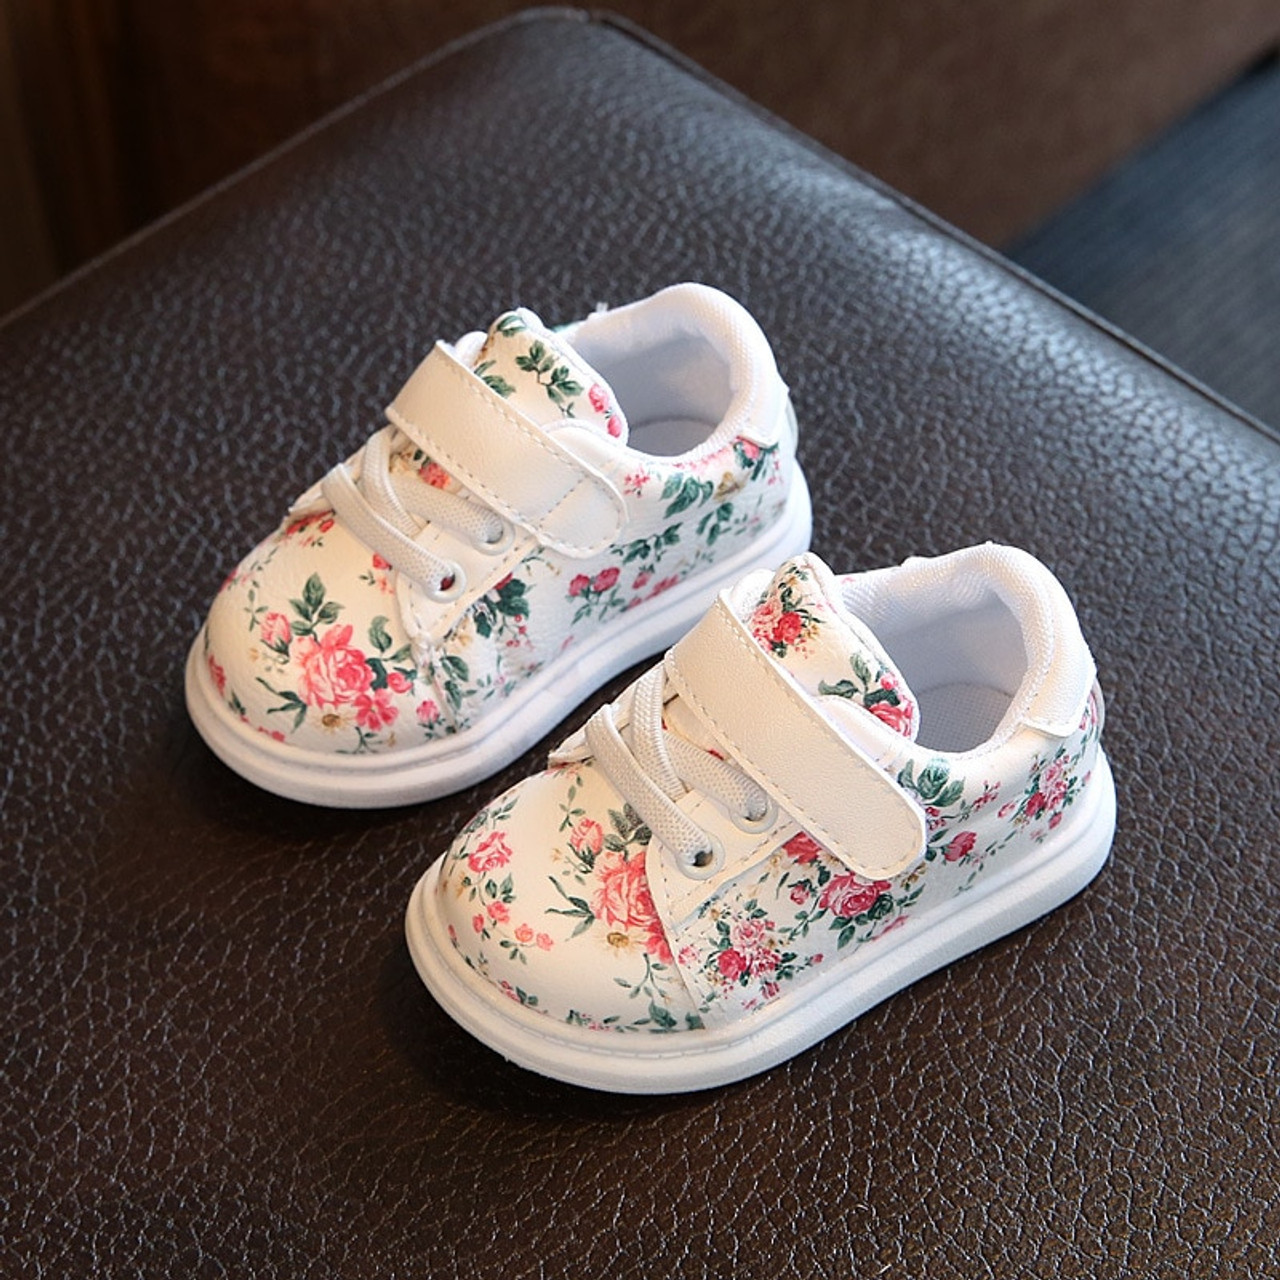 6bf2c3943d7c8 0-3Y Baby Shoes For Girls Soft Black Casual Shoes Flower Infant White Baby  Girl Shoes Soft Toddler Girl Newborn First Walkers